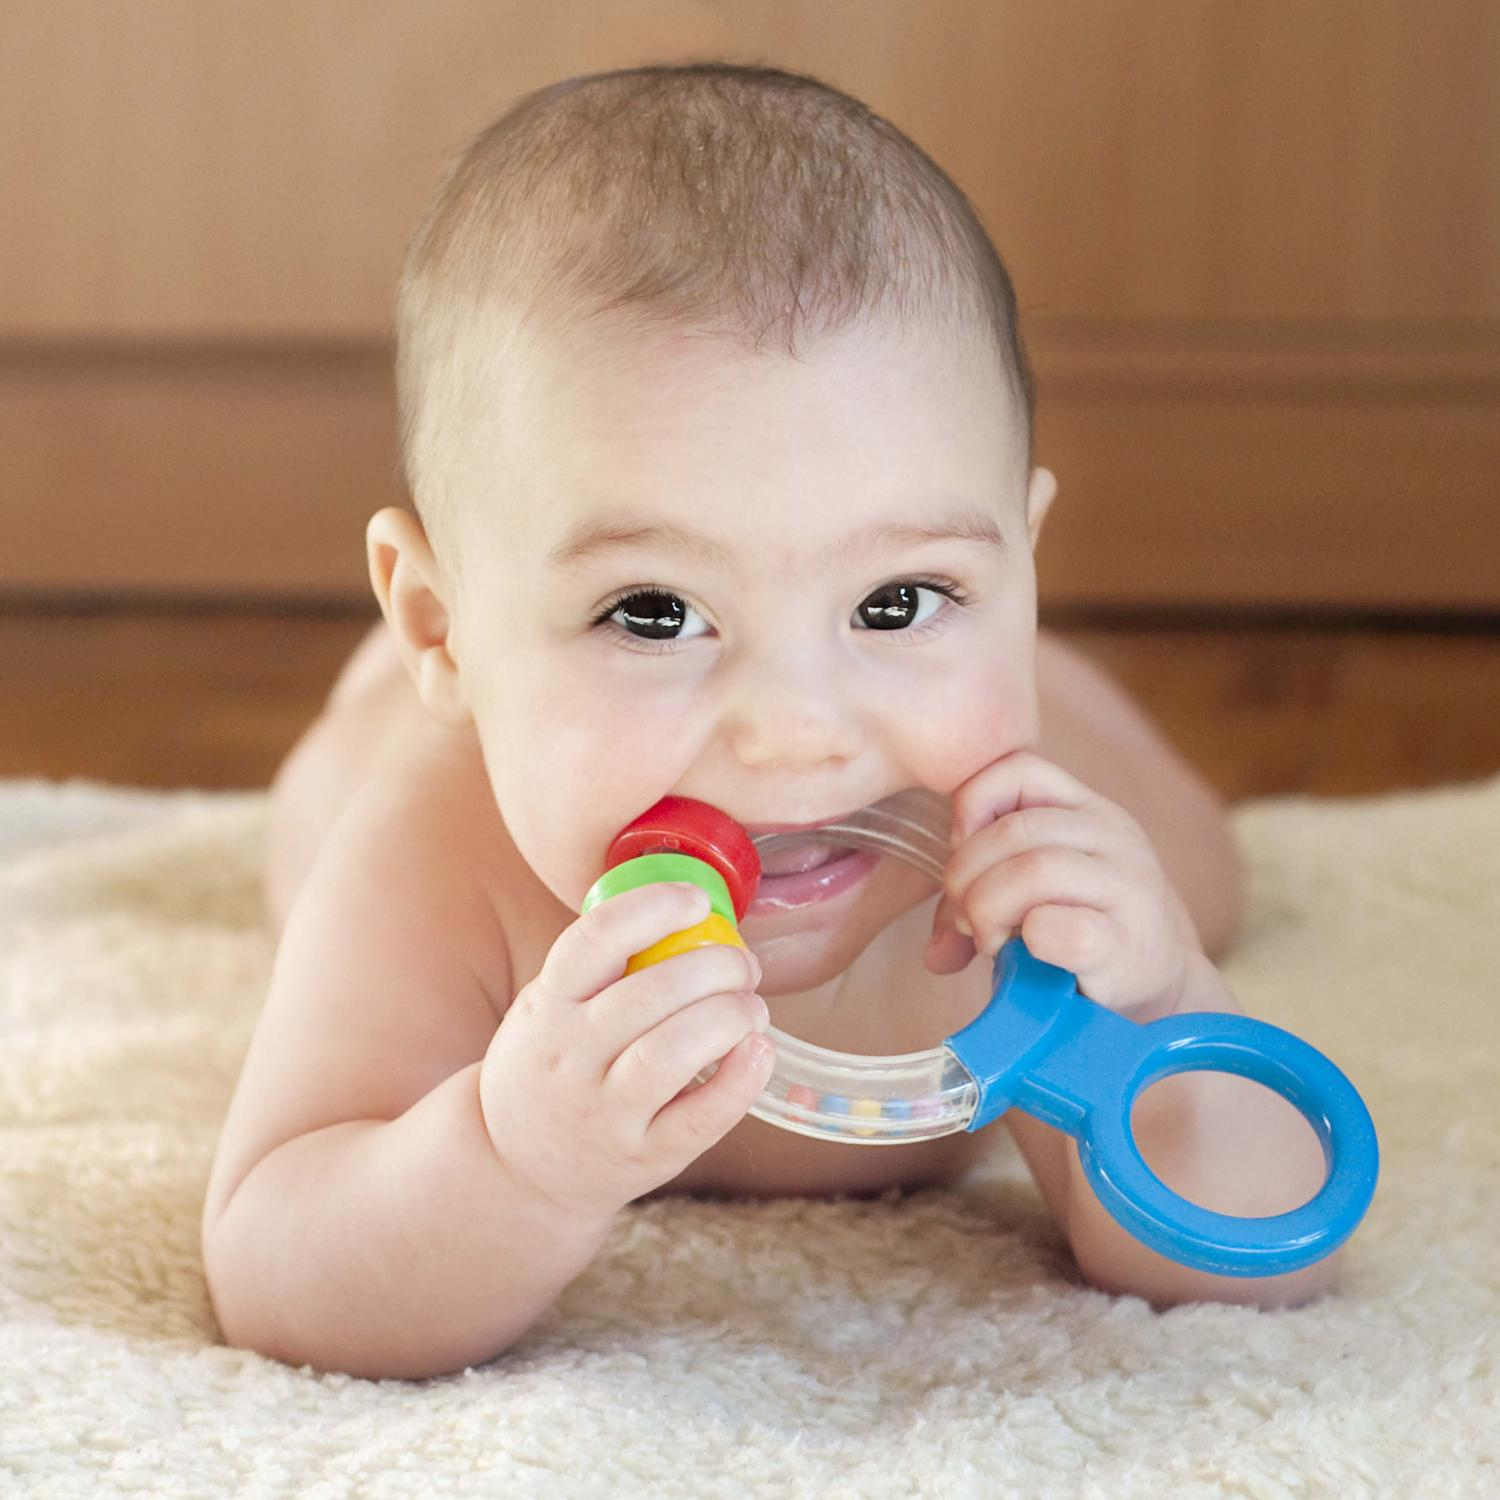 Toys For Teething : Guide to teething symptoms and remedies parenting